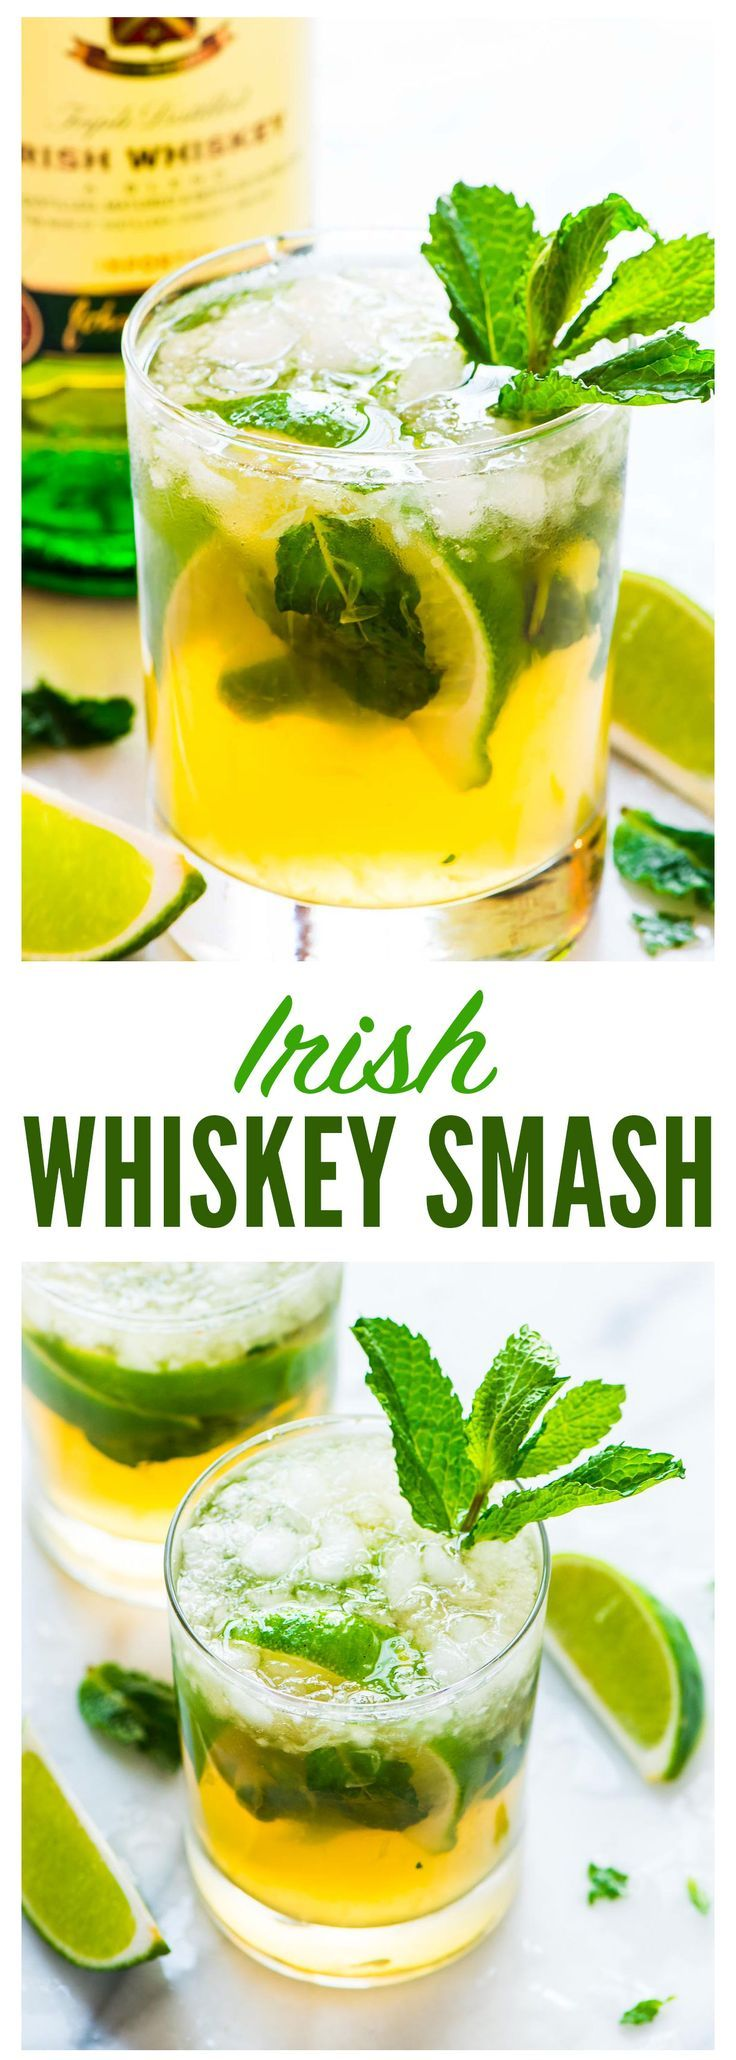 Irish Whiskey Smash — St. Patrick's Day twist on the classic whiskey smash cocktail, which calls for lemons, whiskey, simple syrup, mint. This festive version uses Irish whiskey and lime to make it a green drink! Recipe at wellplated.com | @wellplated